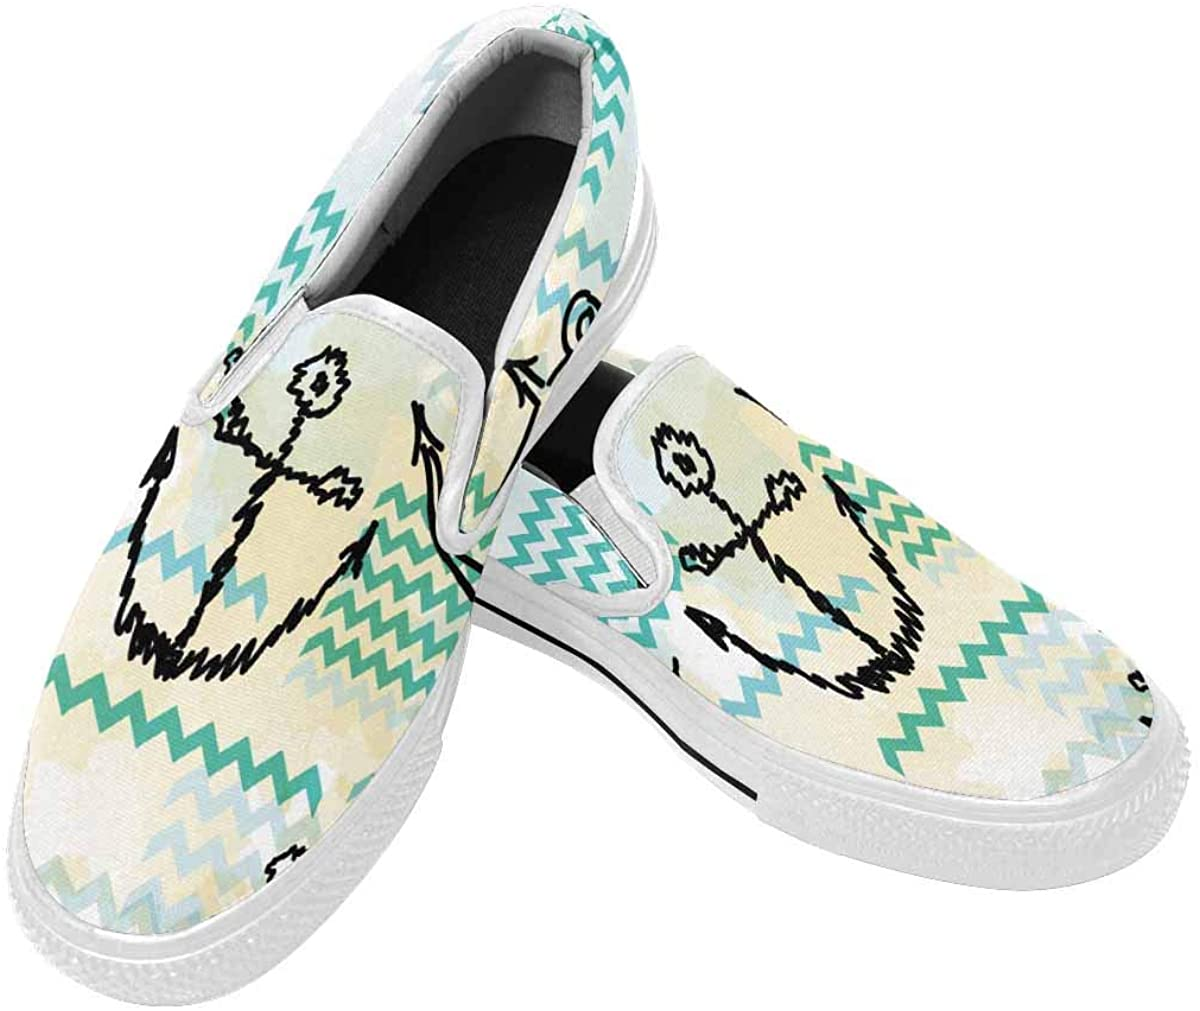 InterestPrint Men Loafers Slip-On Sneakers Casual Comfort Lightweight Travel Stretch Canvas Shoes Anchors and Wave Line